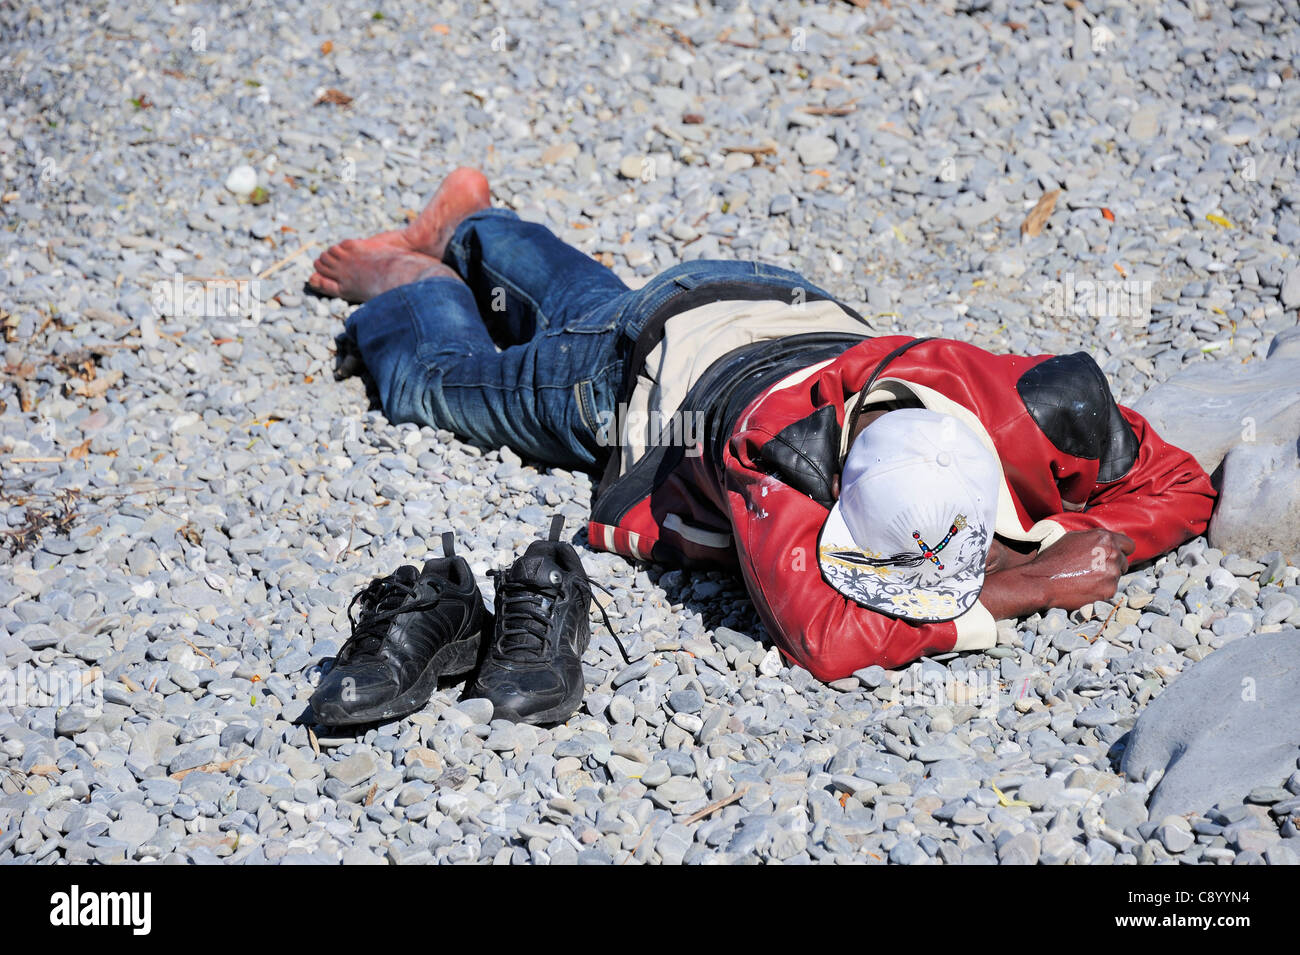 An asylum seeker lying on a pebbly beach with his shoes beside him - Stock Image